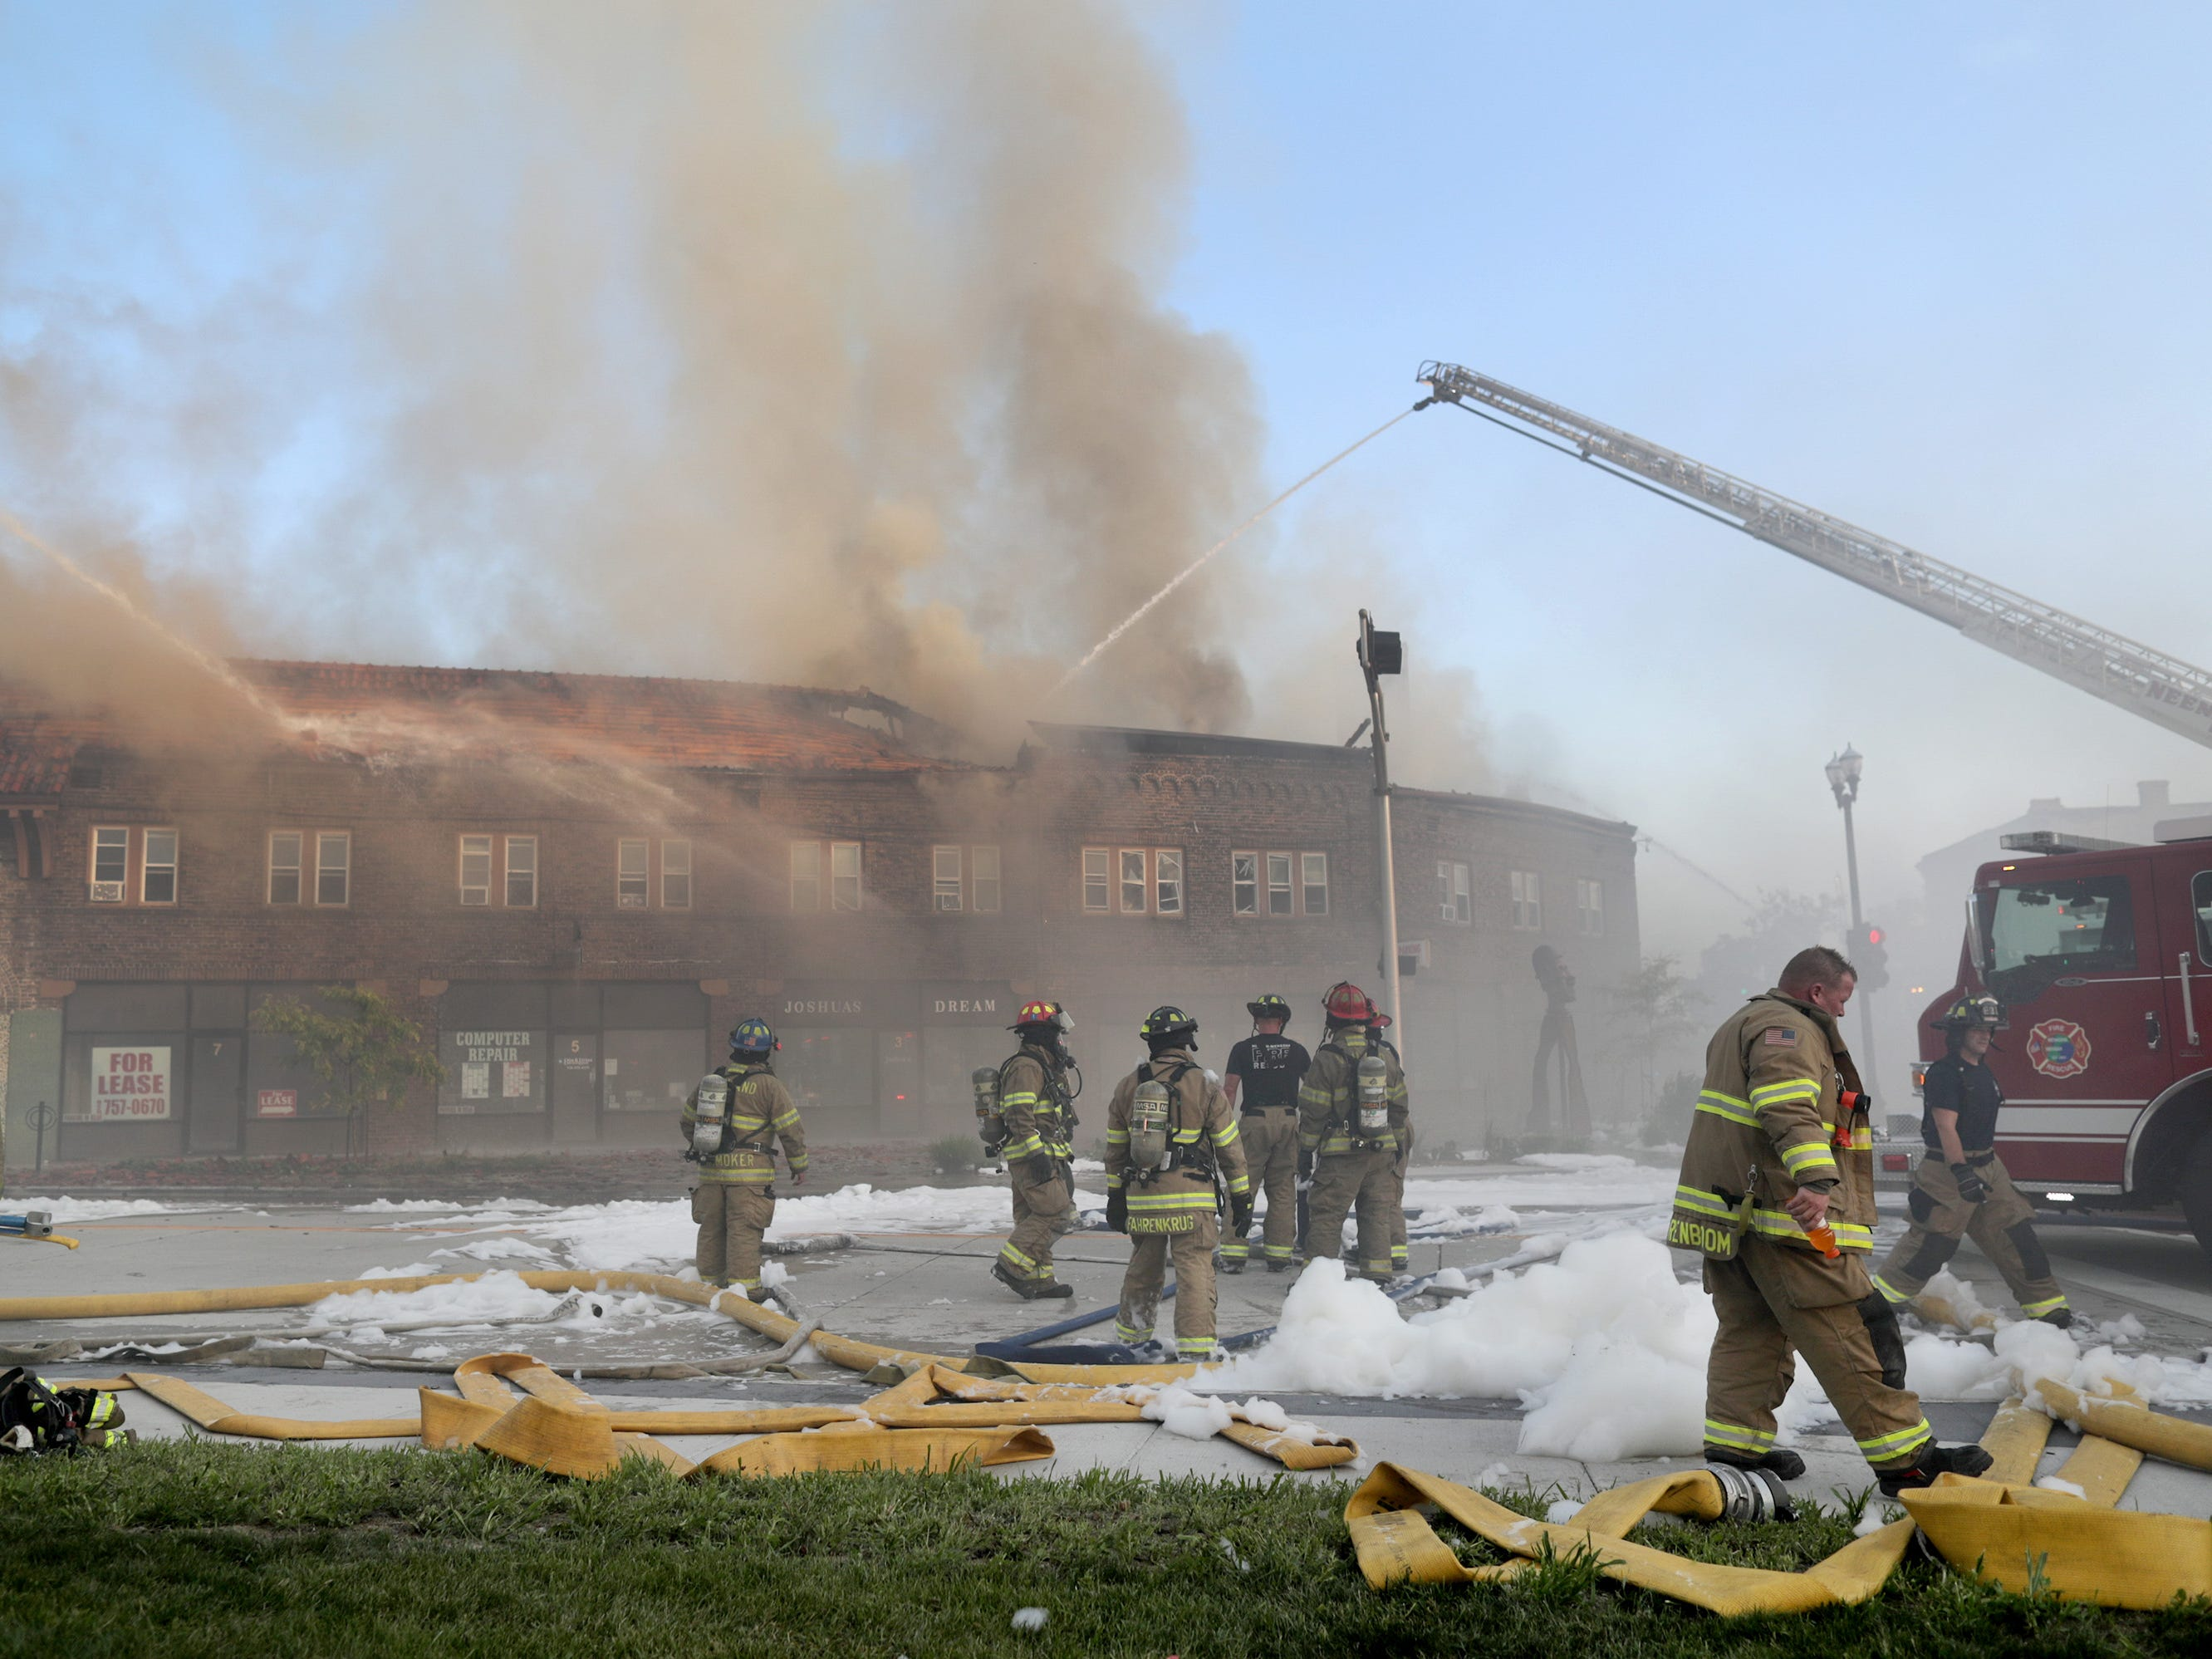 Firefighters from multiple fire departments battle a structure fire in the Brin Building along the block of 1 Main Street on Friday, August 10, 2018, in downtown Menasha, Wis.